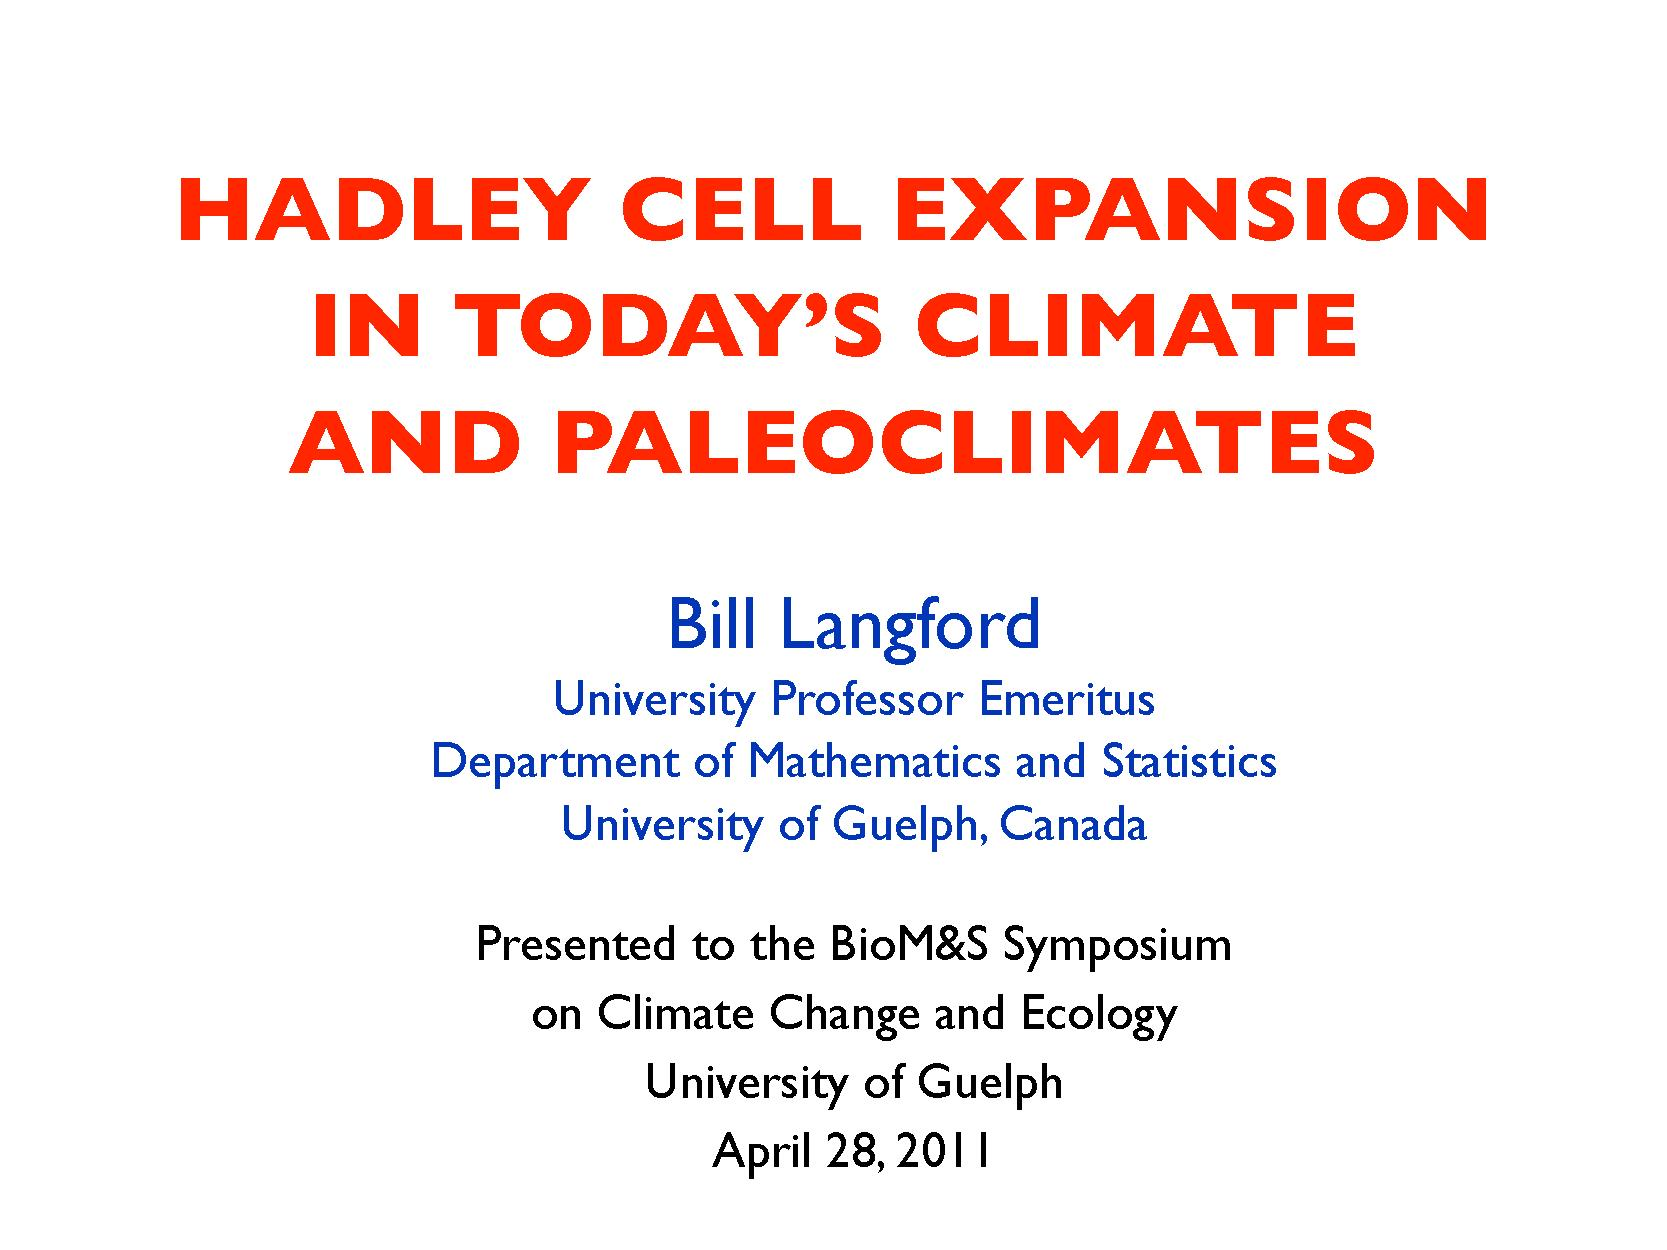 Hadley_Cell_Expansion_Langford.pdf